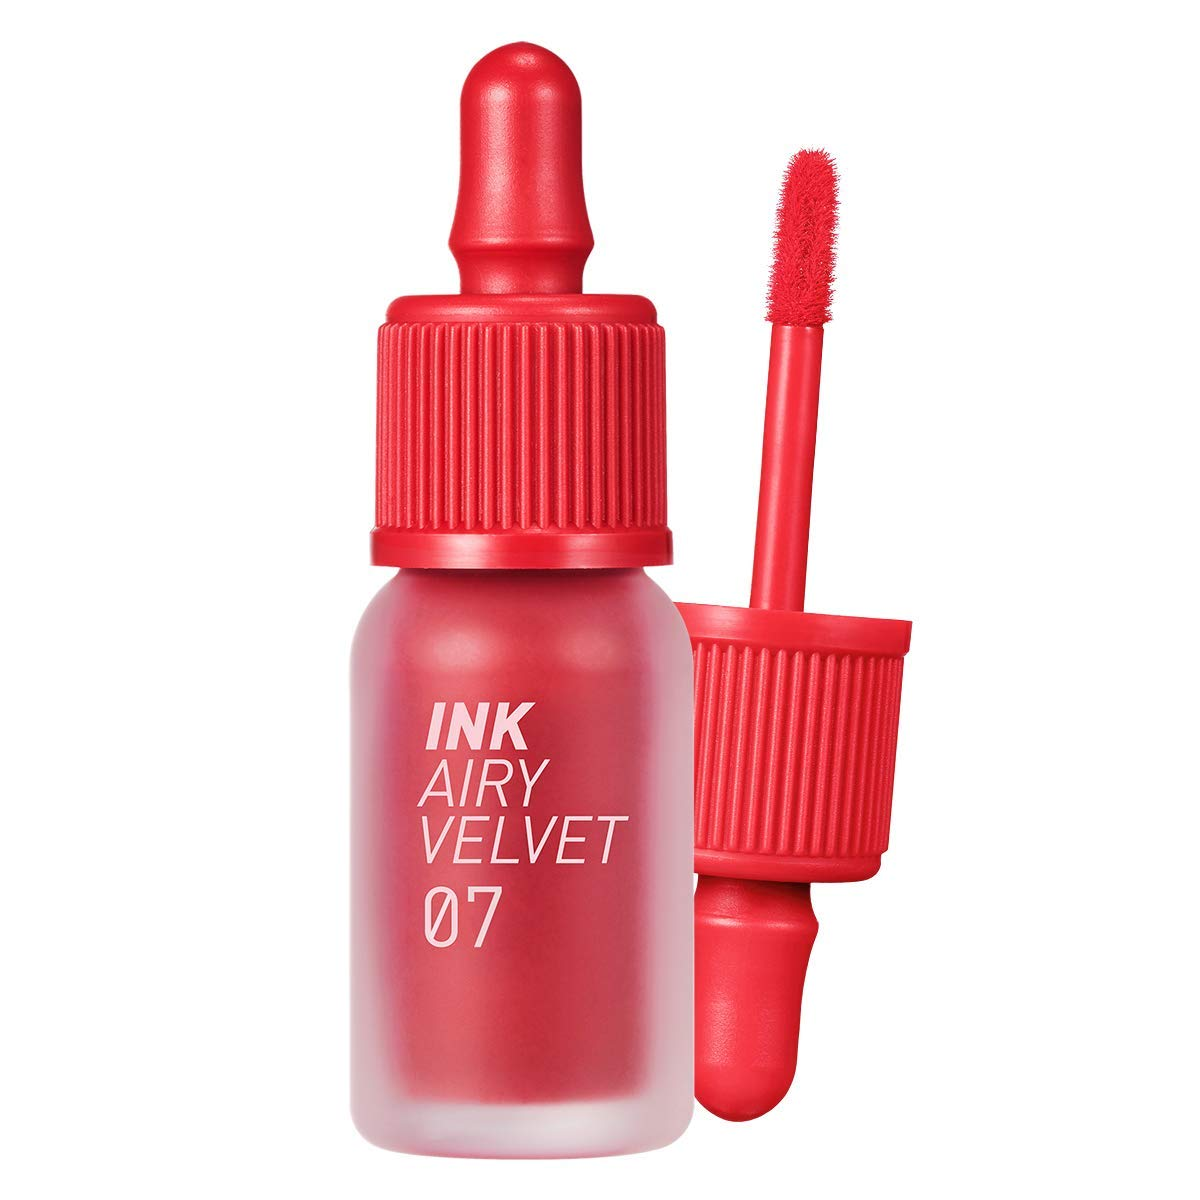 Peripera Ink Airy Velvet Lip Tint | High-Pigmentation, Lightweight, Soft, Moisturizing, Not Animal Tested | Heart Grapefruit (#07), 0.14 fl oz